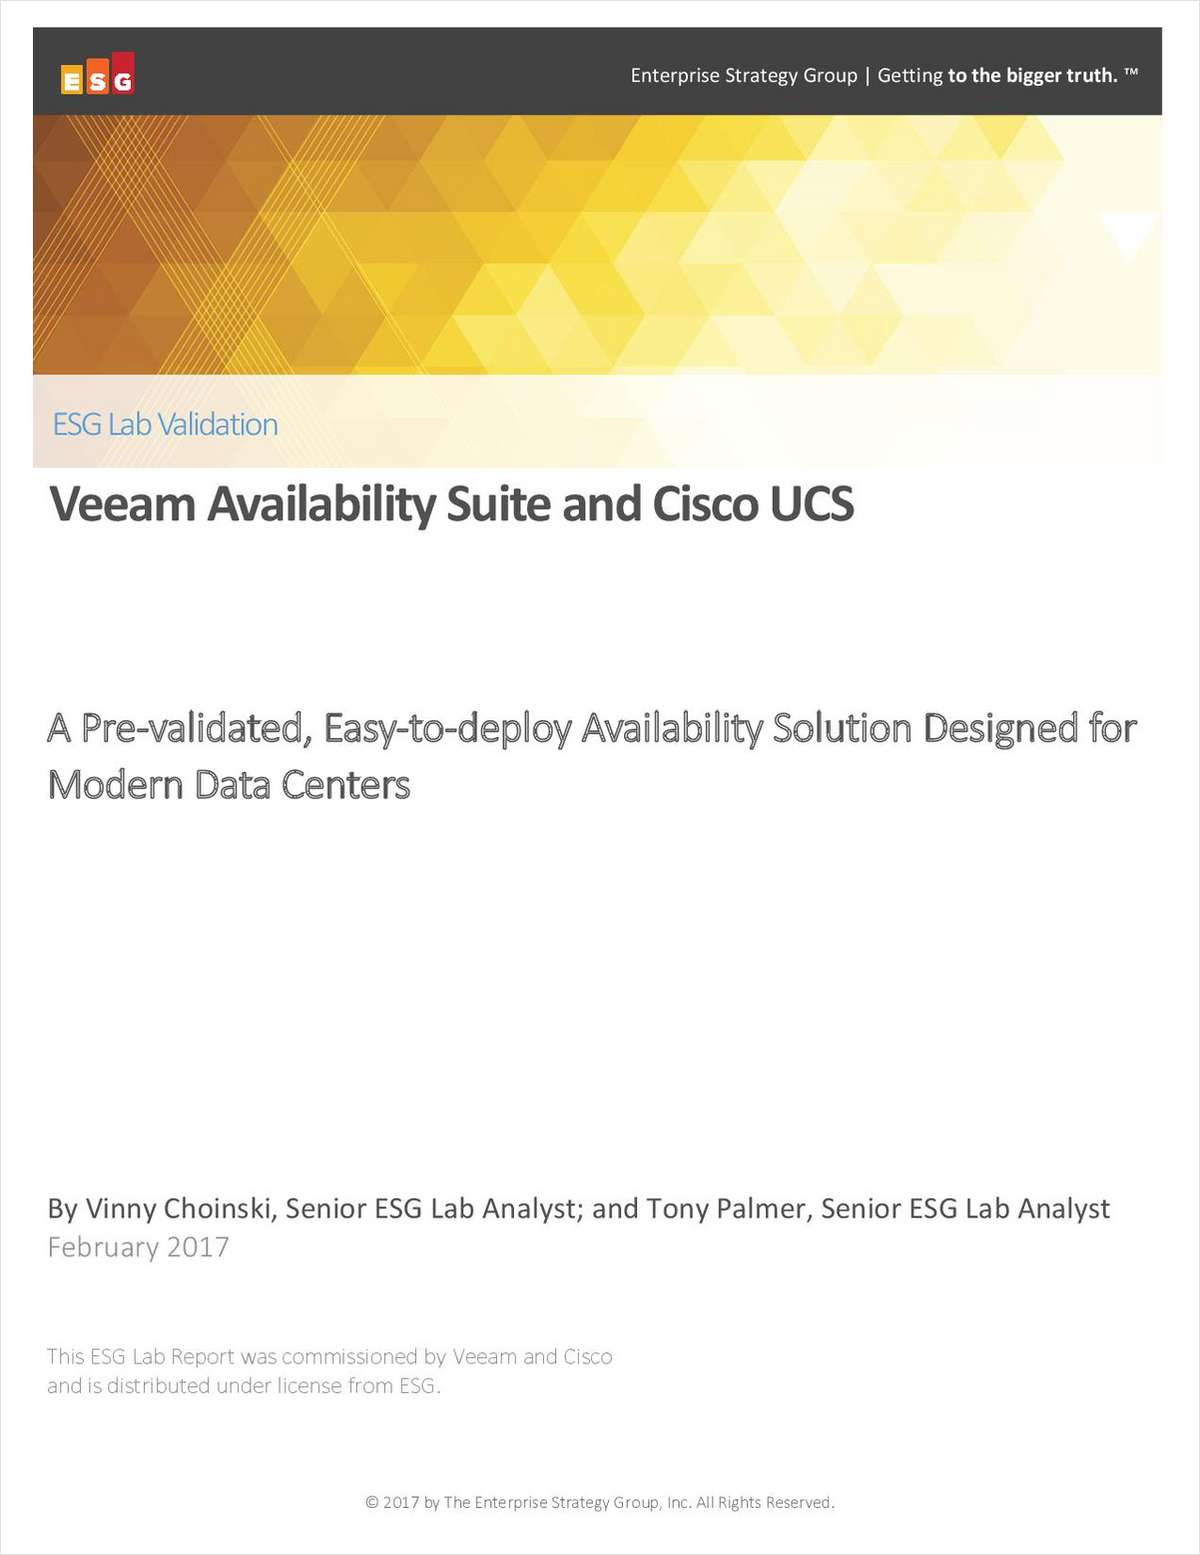 ESG Lab Validation: Veeam Availability Suite and Cisco UCS